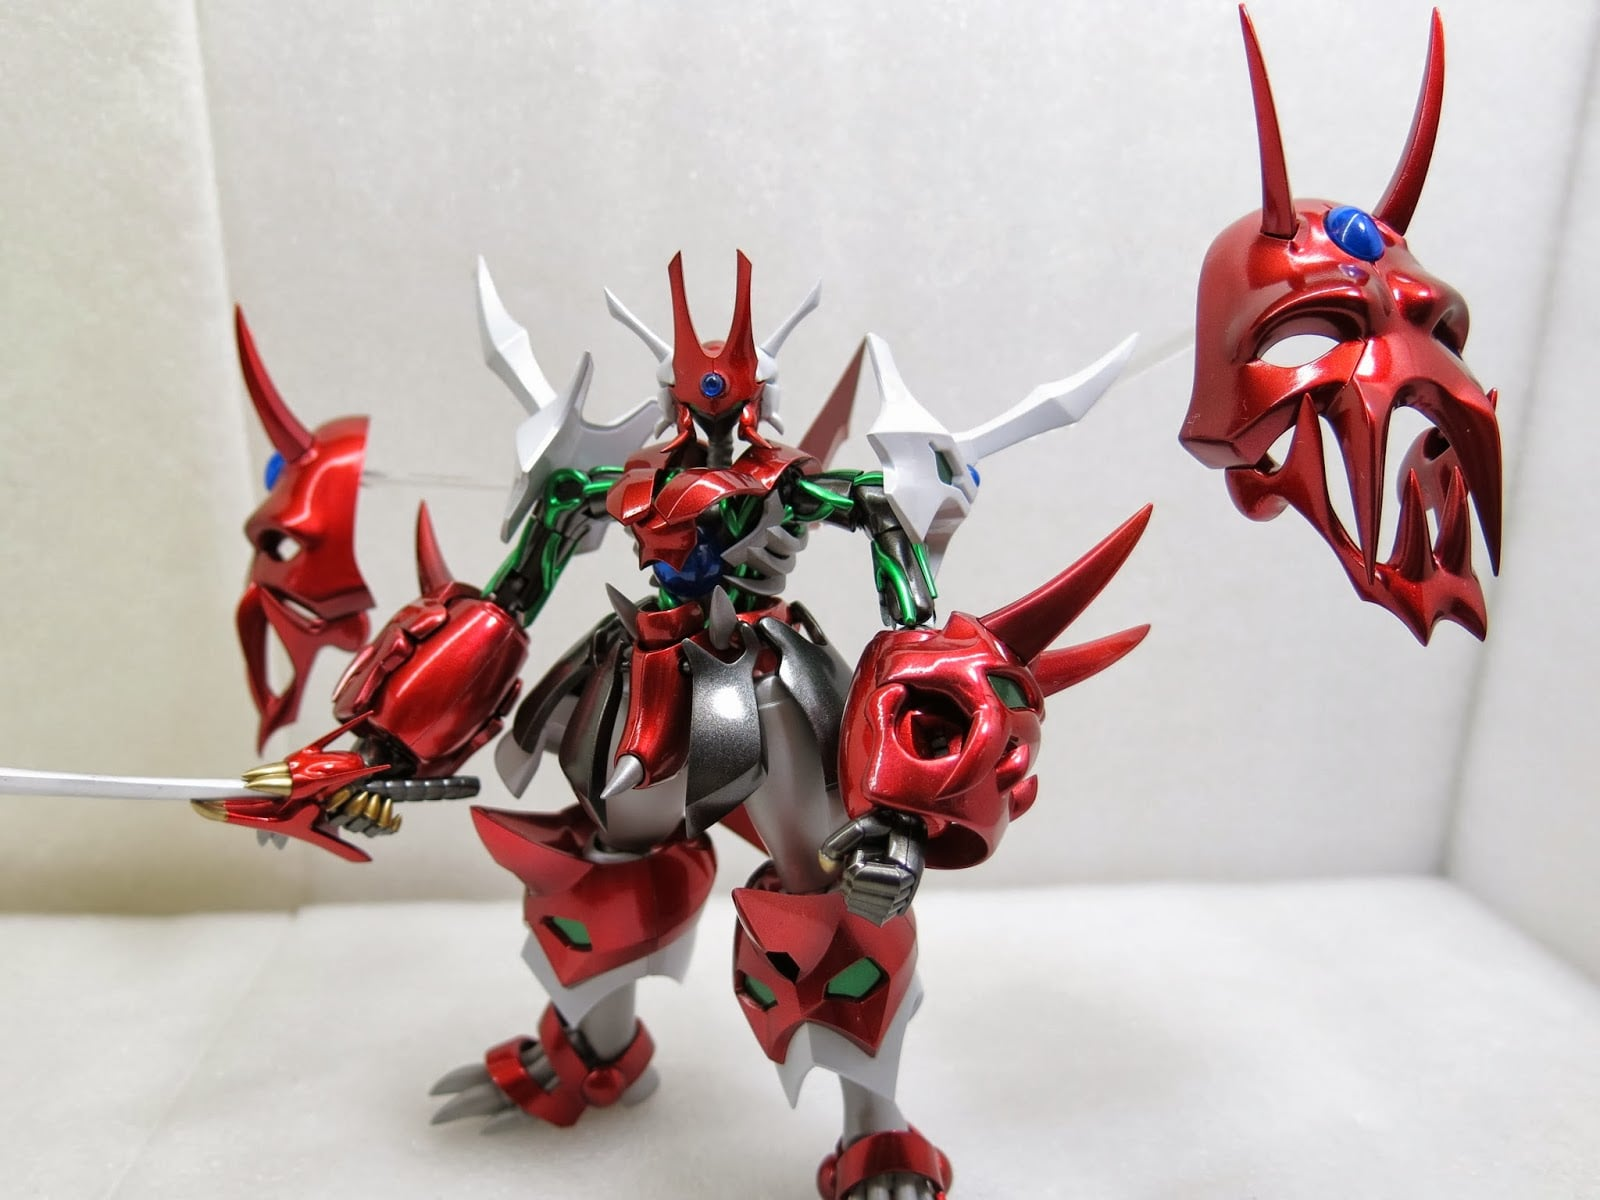 Toy Model Ghost Mask 07 約瑟夫模型:鬼面 SRG-S034~PERSON-LICHKEIT 超級機器人大戰 OG